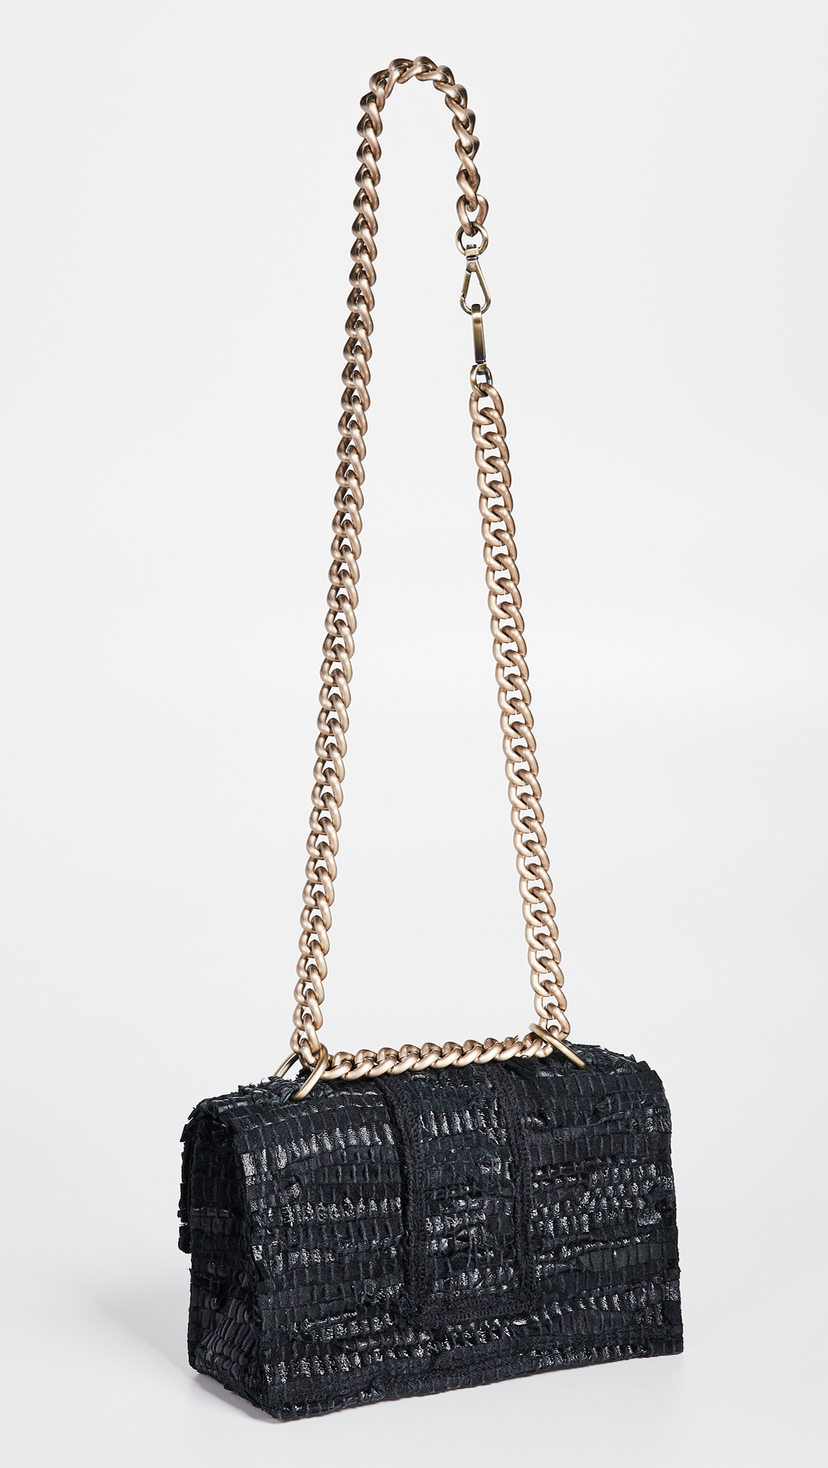 Kooreloo Soho Shoulder Bag - Black Bags Gifts